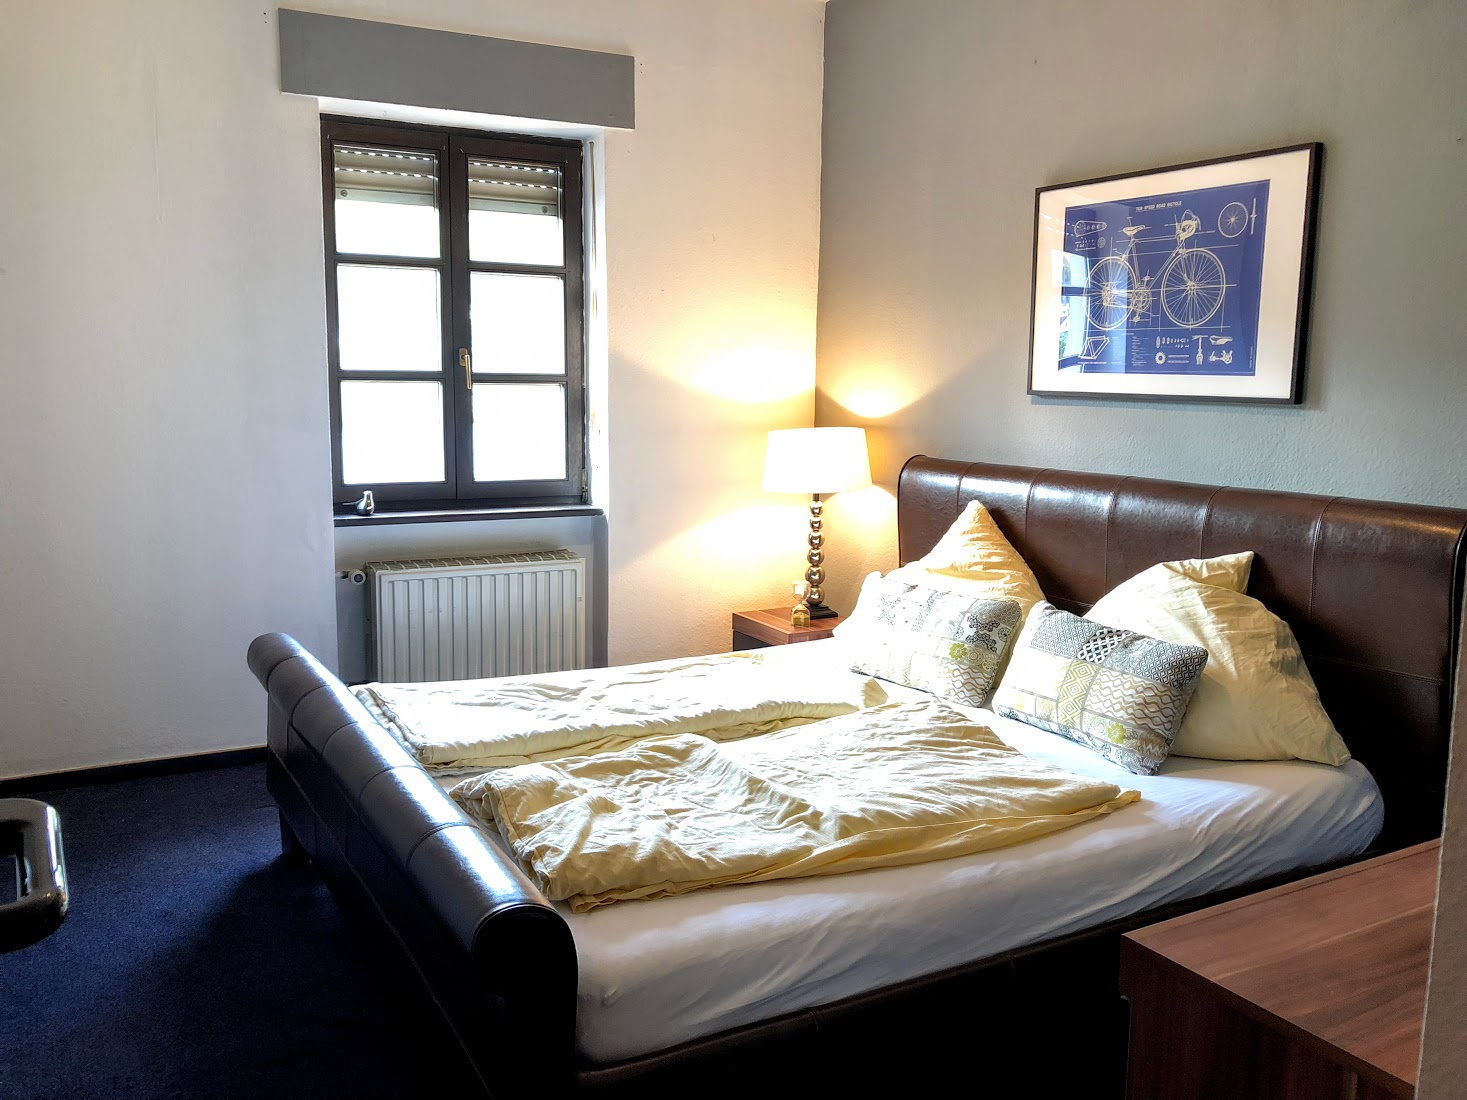 This bedroom has a large, comfortable bed and beautiful view of the river